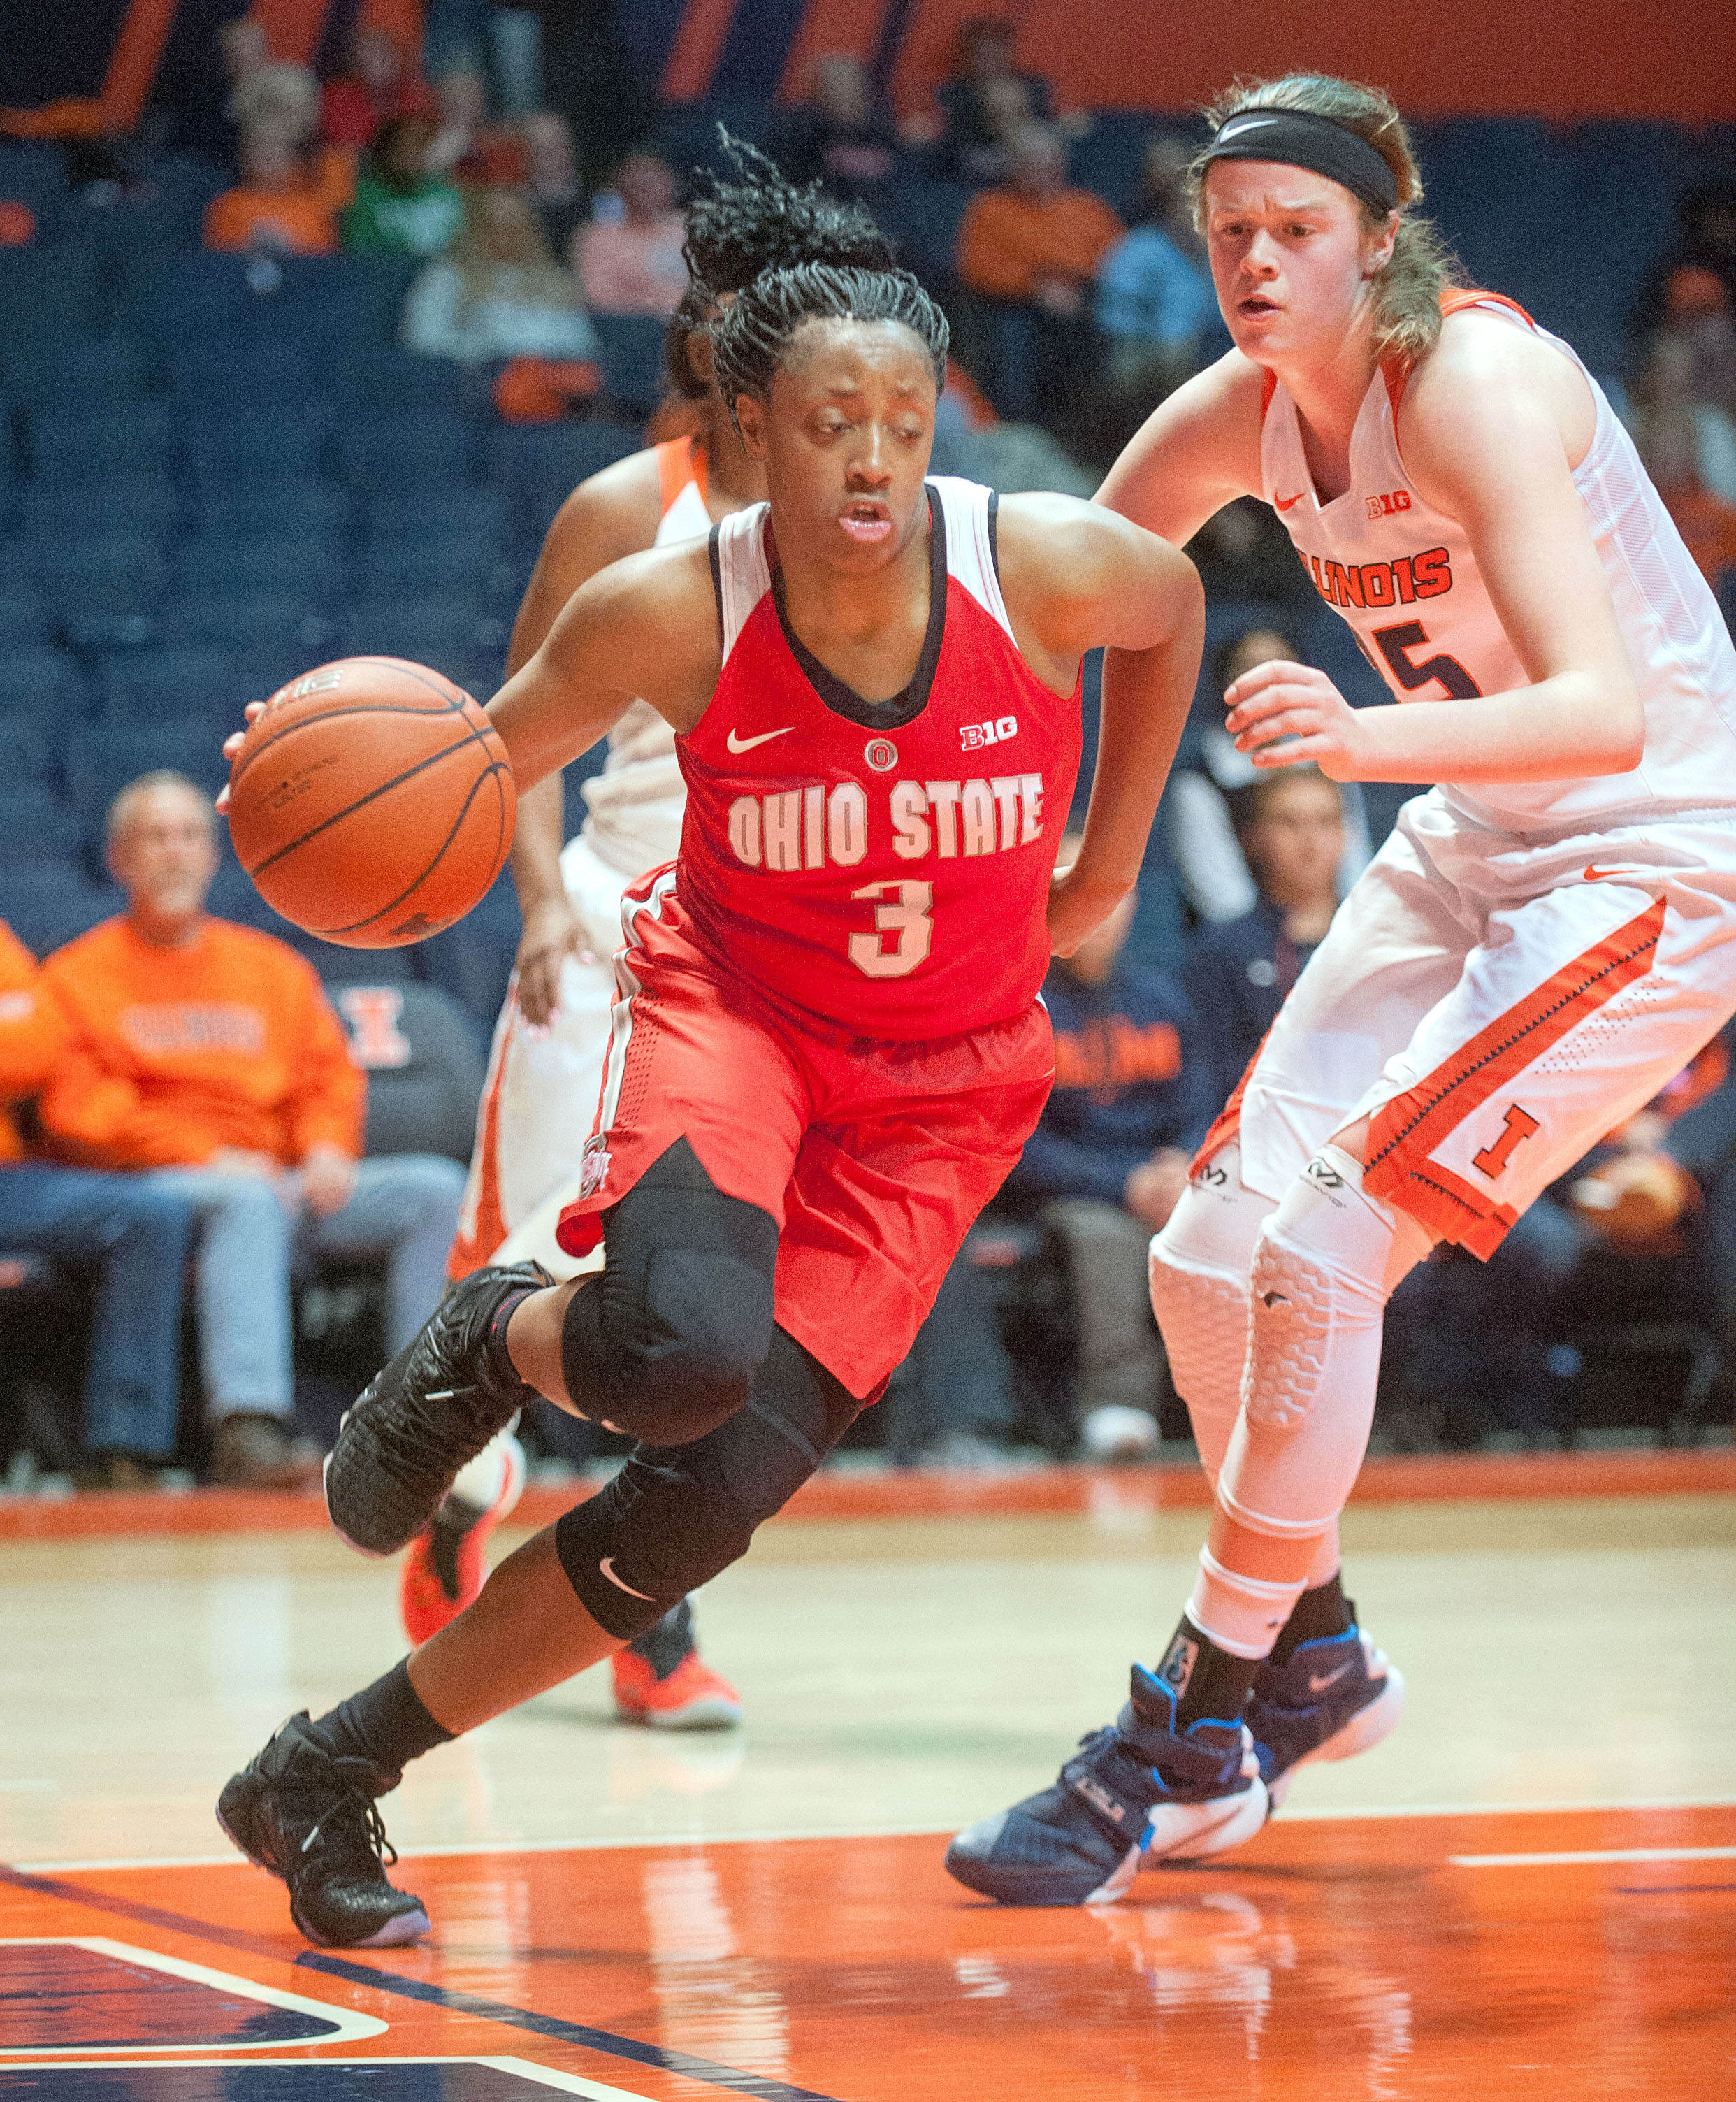 Ohio State guard Kelsey Mitchell (3) drives the baseline past Illinois forward Alex Wittinger (35) in the second half of an NCAA college basketball game at the State Farm Center in Champaign, Ill., Monday, Feb. 1, 2016. Ohio State won 80-70. (AP Photo/Ric